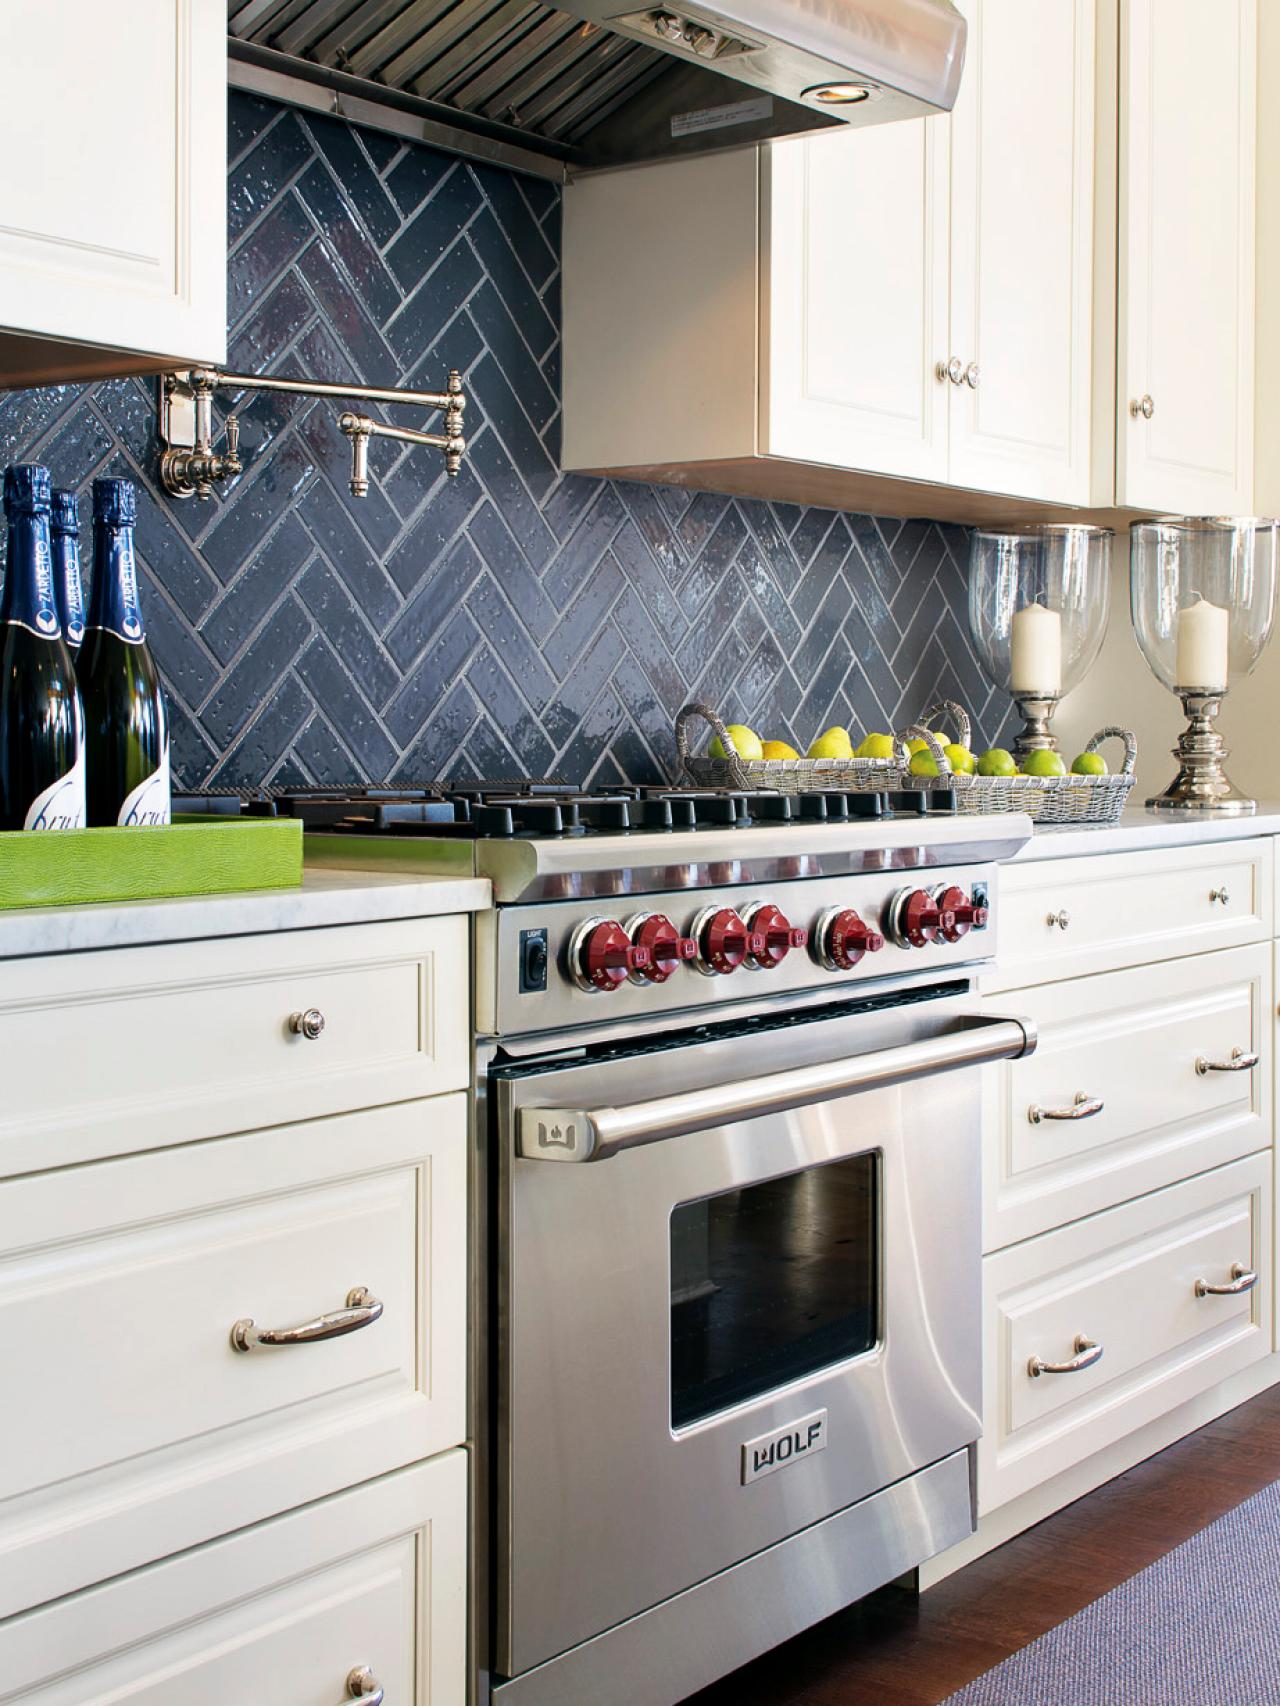 Subway tile backsplashes pictures ideas tips from hgtv hgtv dailygadgetfo Choice Image